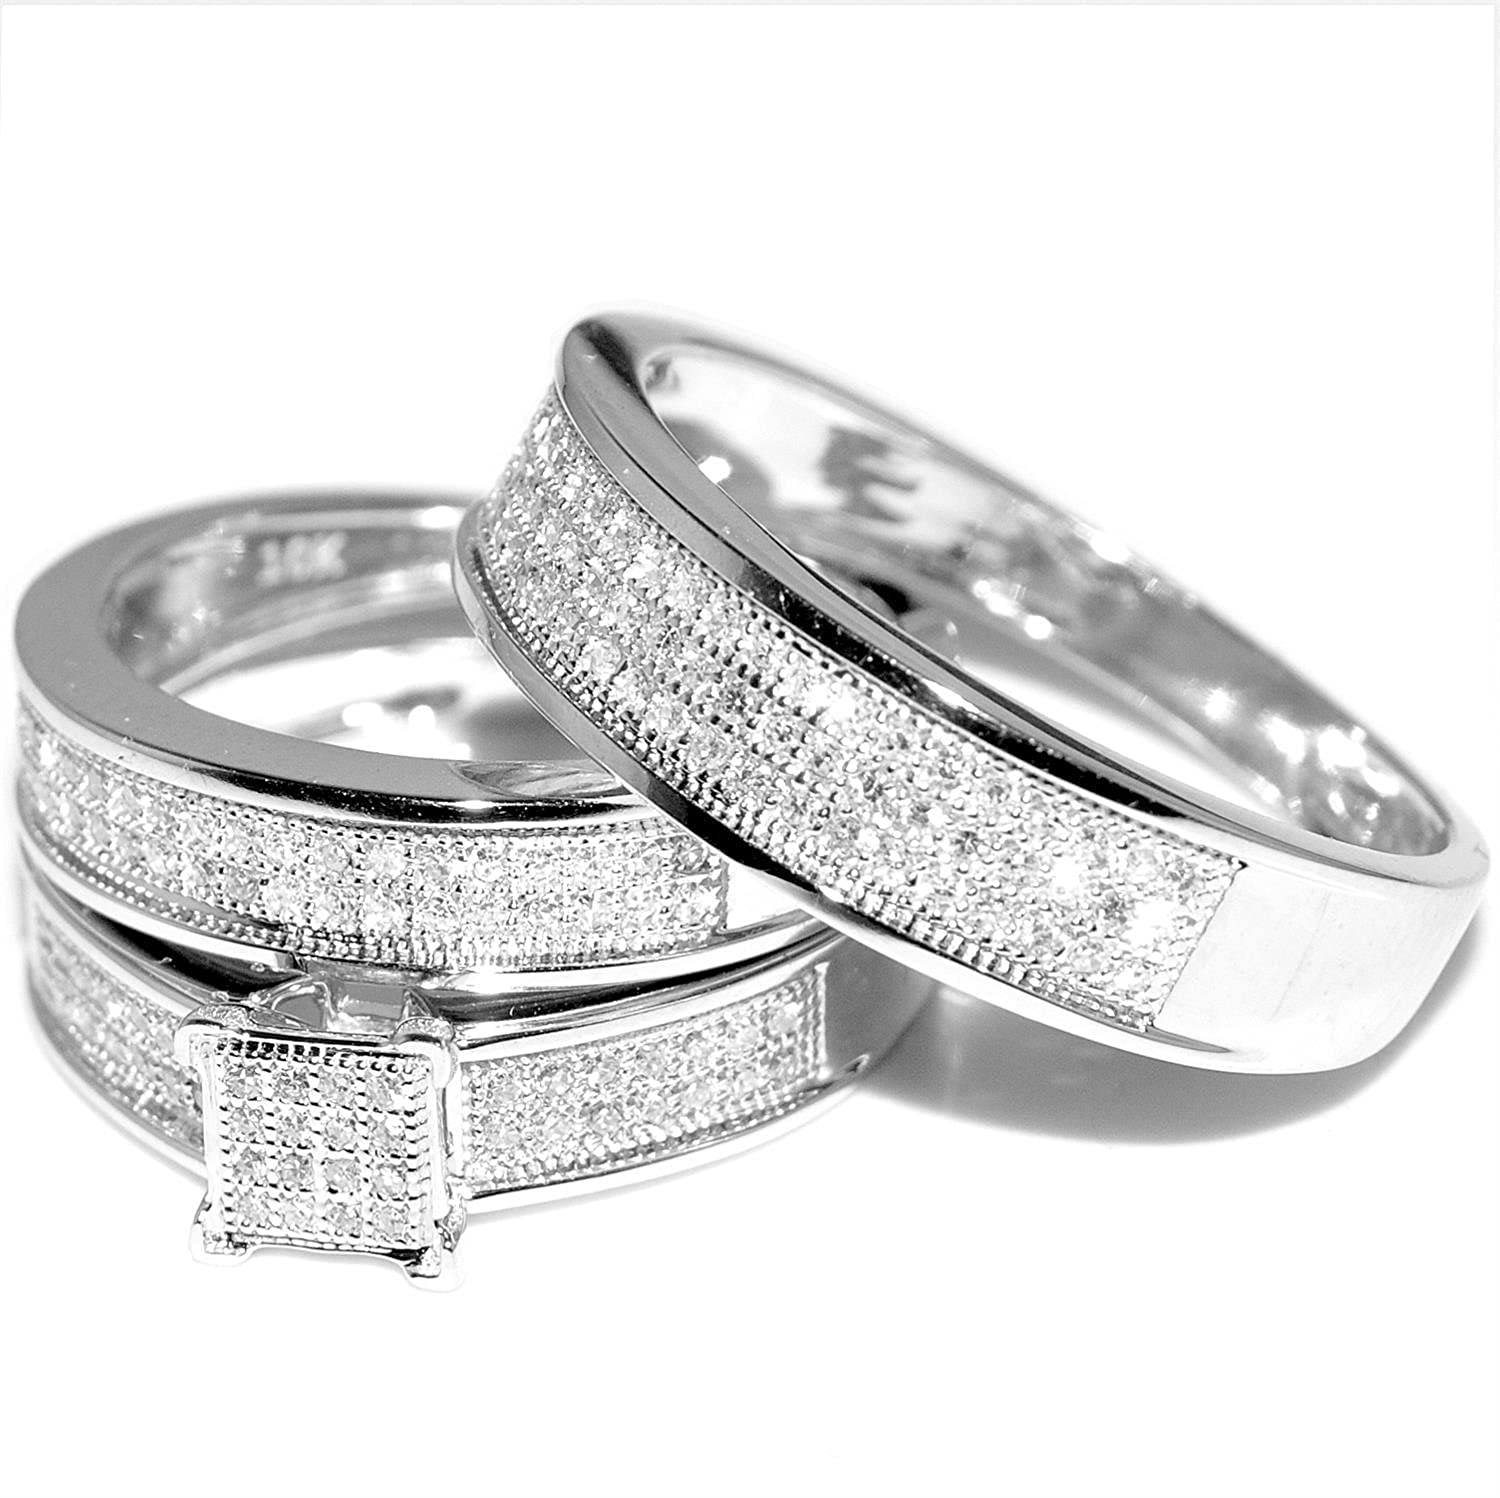 white gold trio wedding set mens womens wedding rings matching 040cttw diamondamazoncom - Wedding Band And Engagement Ring Set